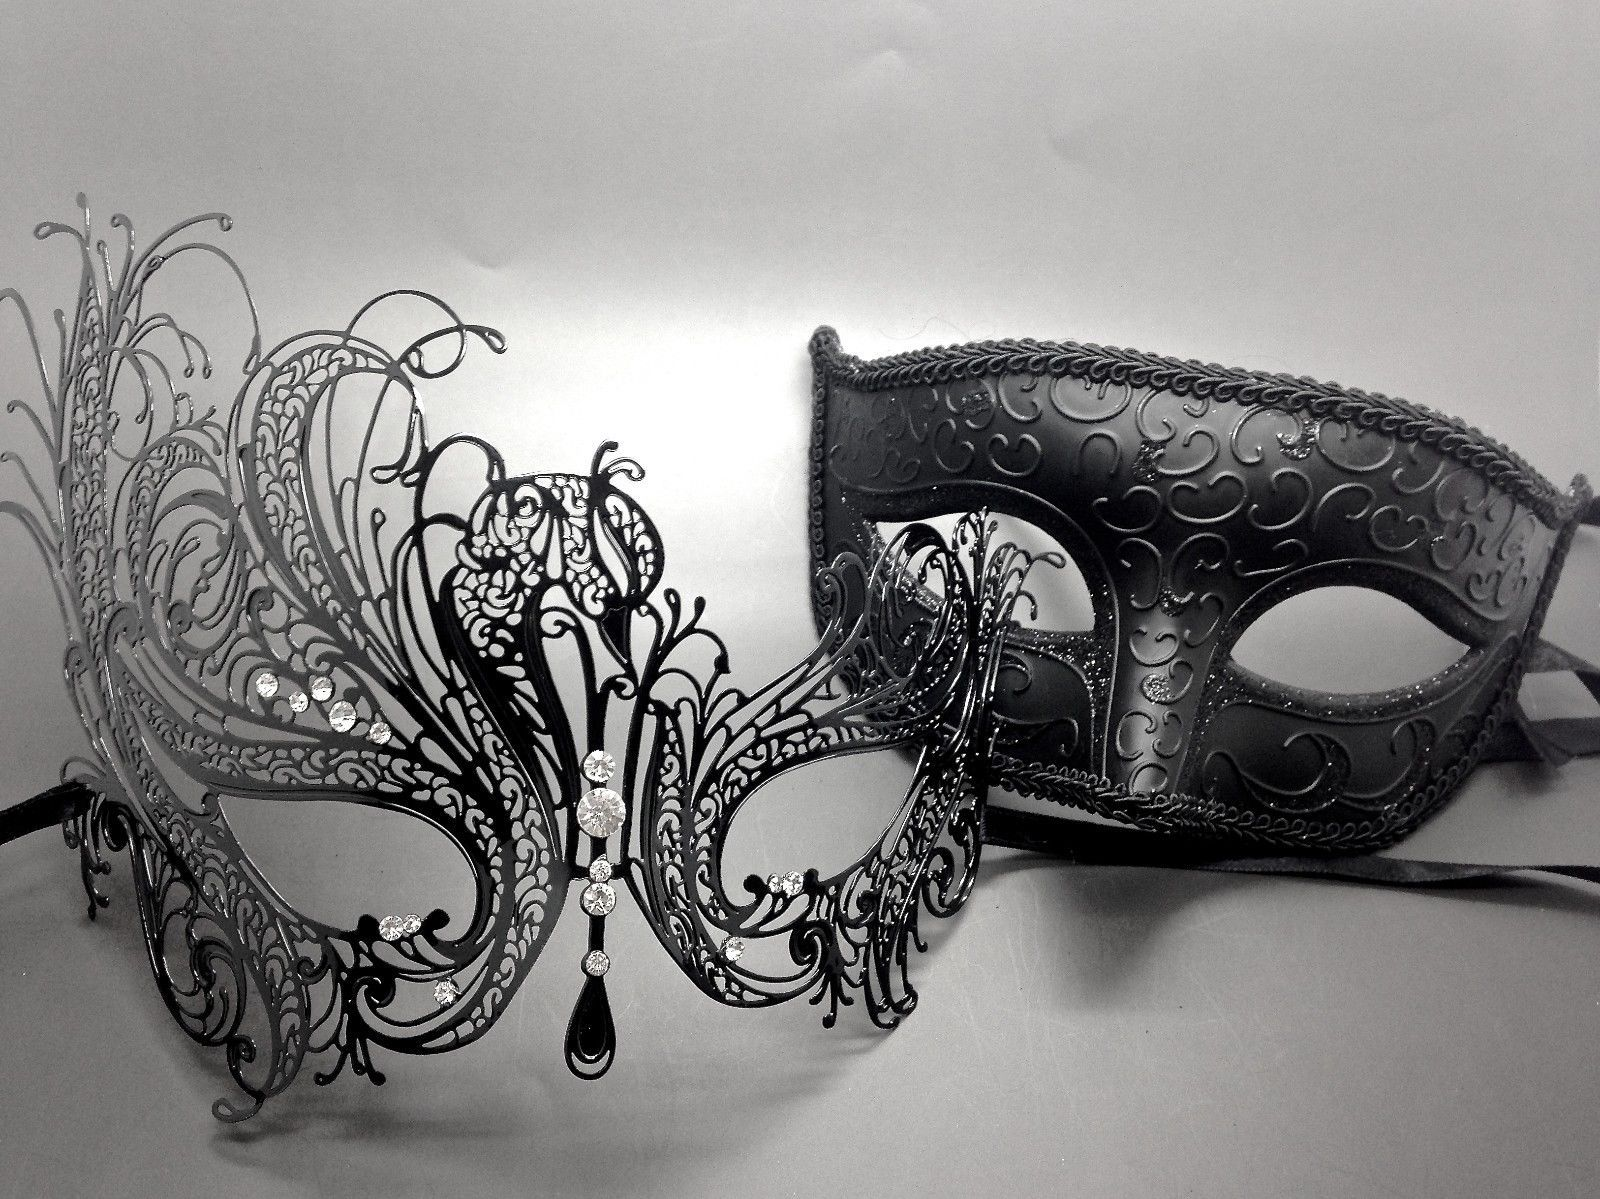 27e6d8f7a190 Men Women Couple Black Metal and Glitter Venetian Masquerade Ball Party Mask  | eBay